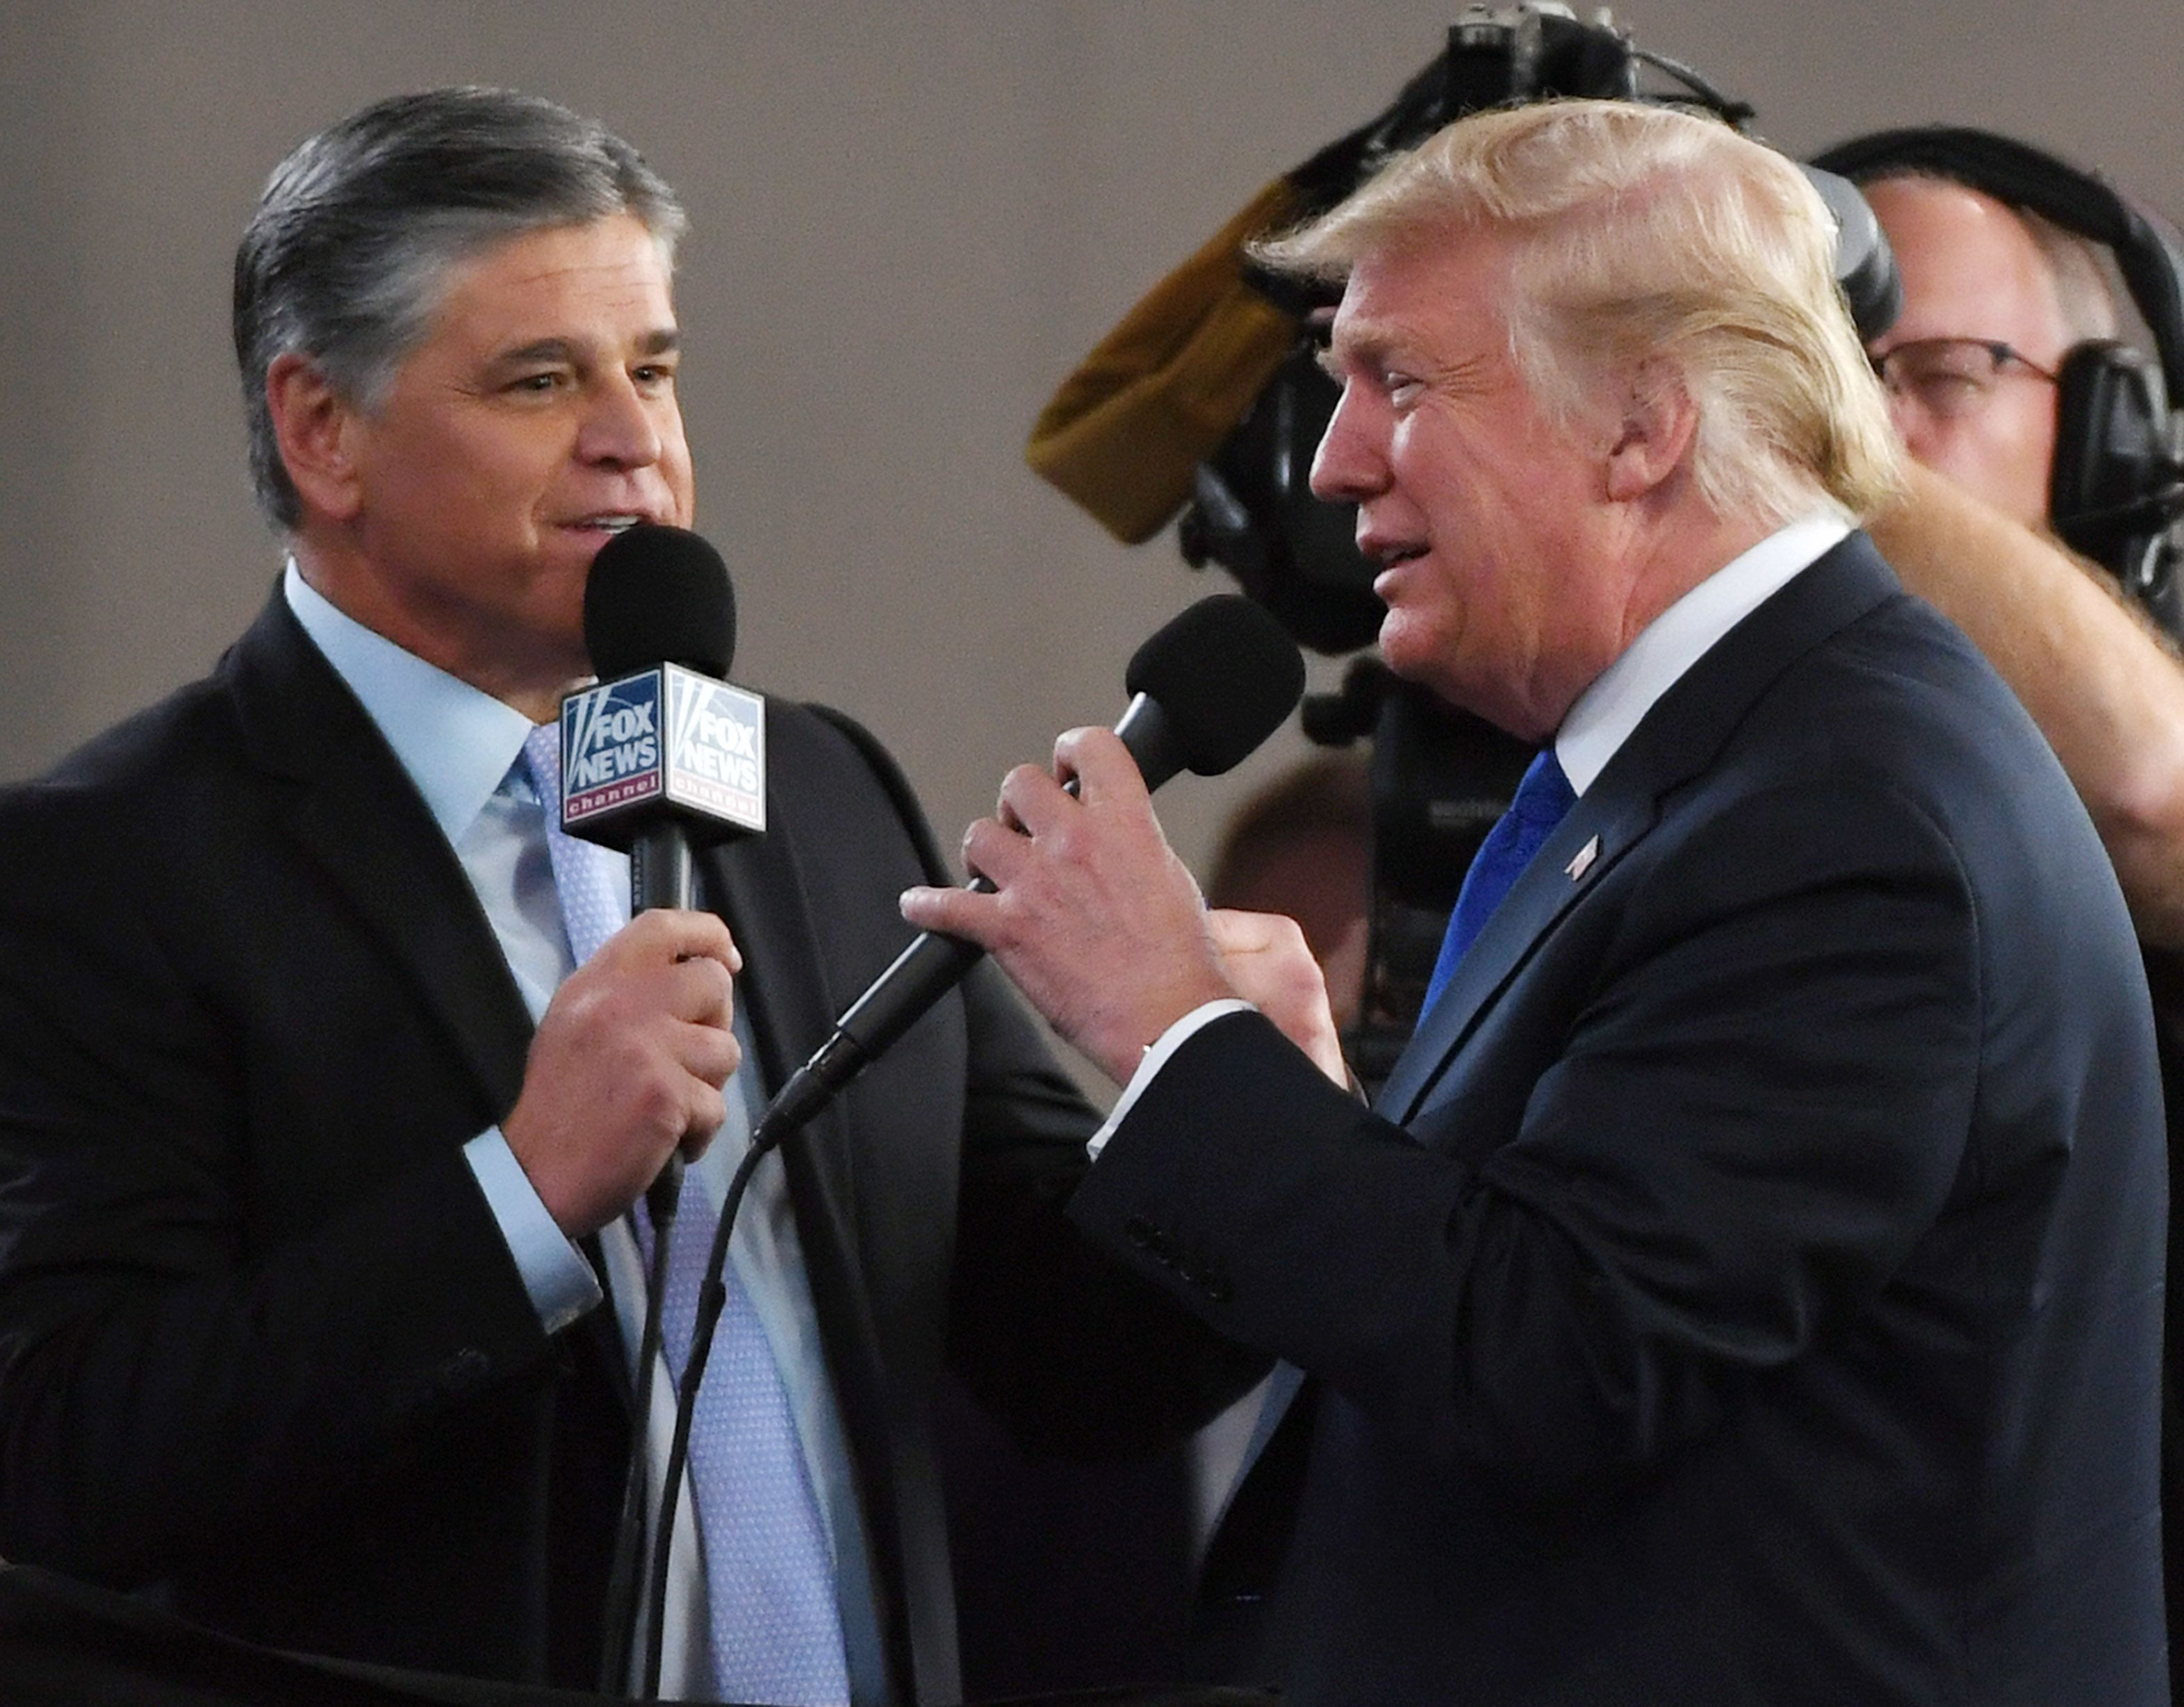 LAS VEGAS, NV - SEPTEMBER 20:  Fox News Channel and radio talk show host Sean Hannity (L) interviews U.S. President Donald Trump before a campaign rally at the Las Vegas Convention Center on September 20, 2018 in Las Vegas, Nevada. Trump is in town to support the re-election campaign for U.S. Sen. Dean Heller (R-NV) as well as Nevada Attorney General and Republican gubernatorial candidate Adam Laxalt and candidate for Nevada's 3rd House District Danny Tarkanian and 4th House District Cresent Hardy.  (Photo by Ethan Miller/Getty Images)